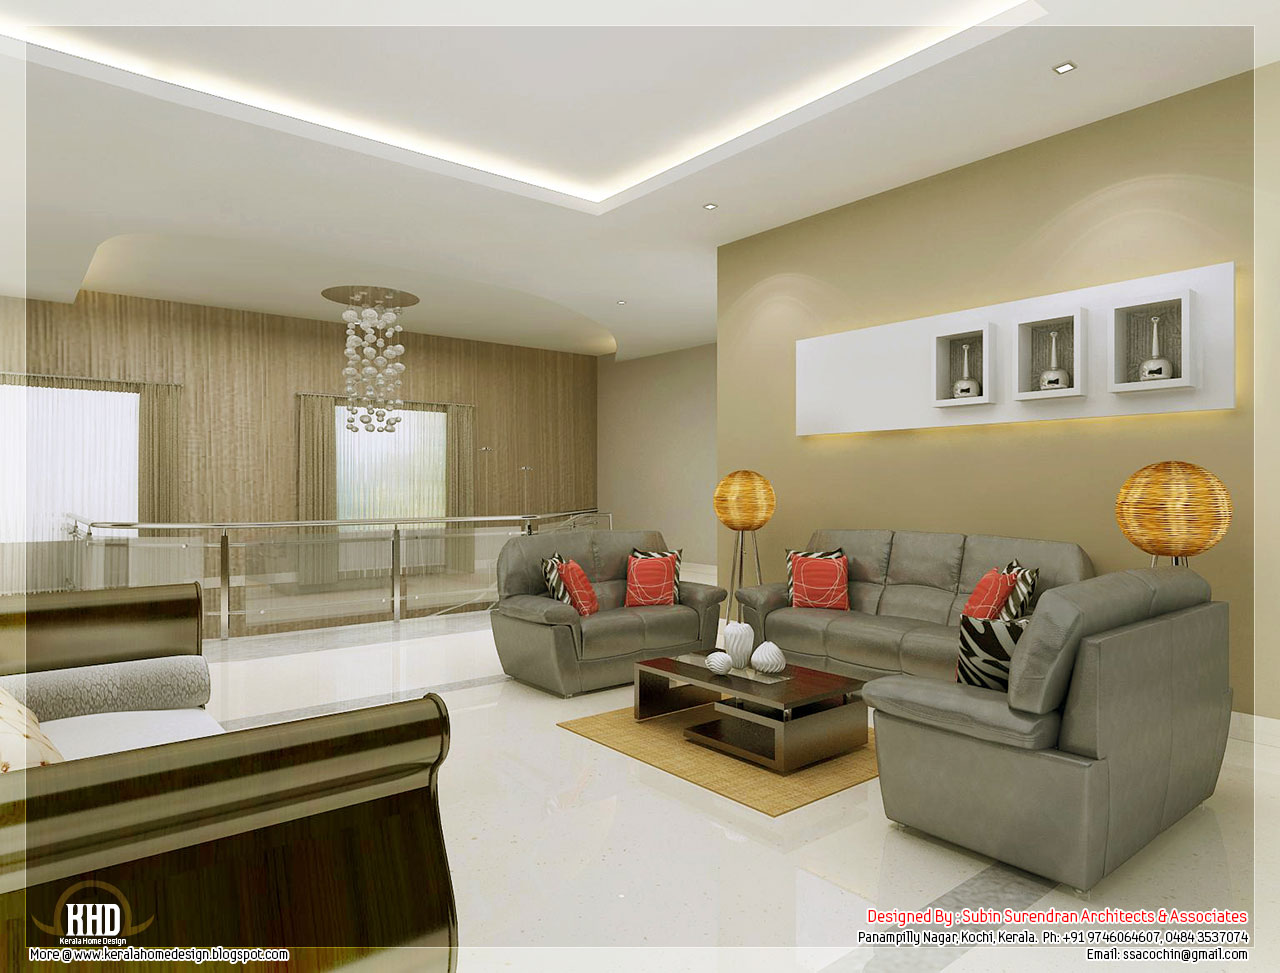 Awesome 3d interior renderings kerala home design and floor plans Interior design ideas for kerala houses